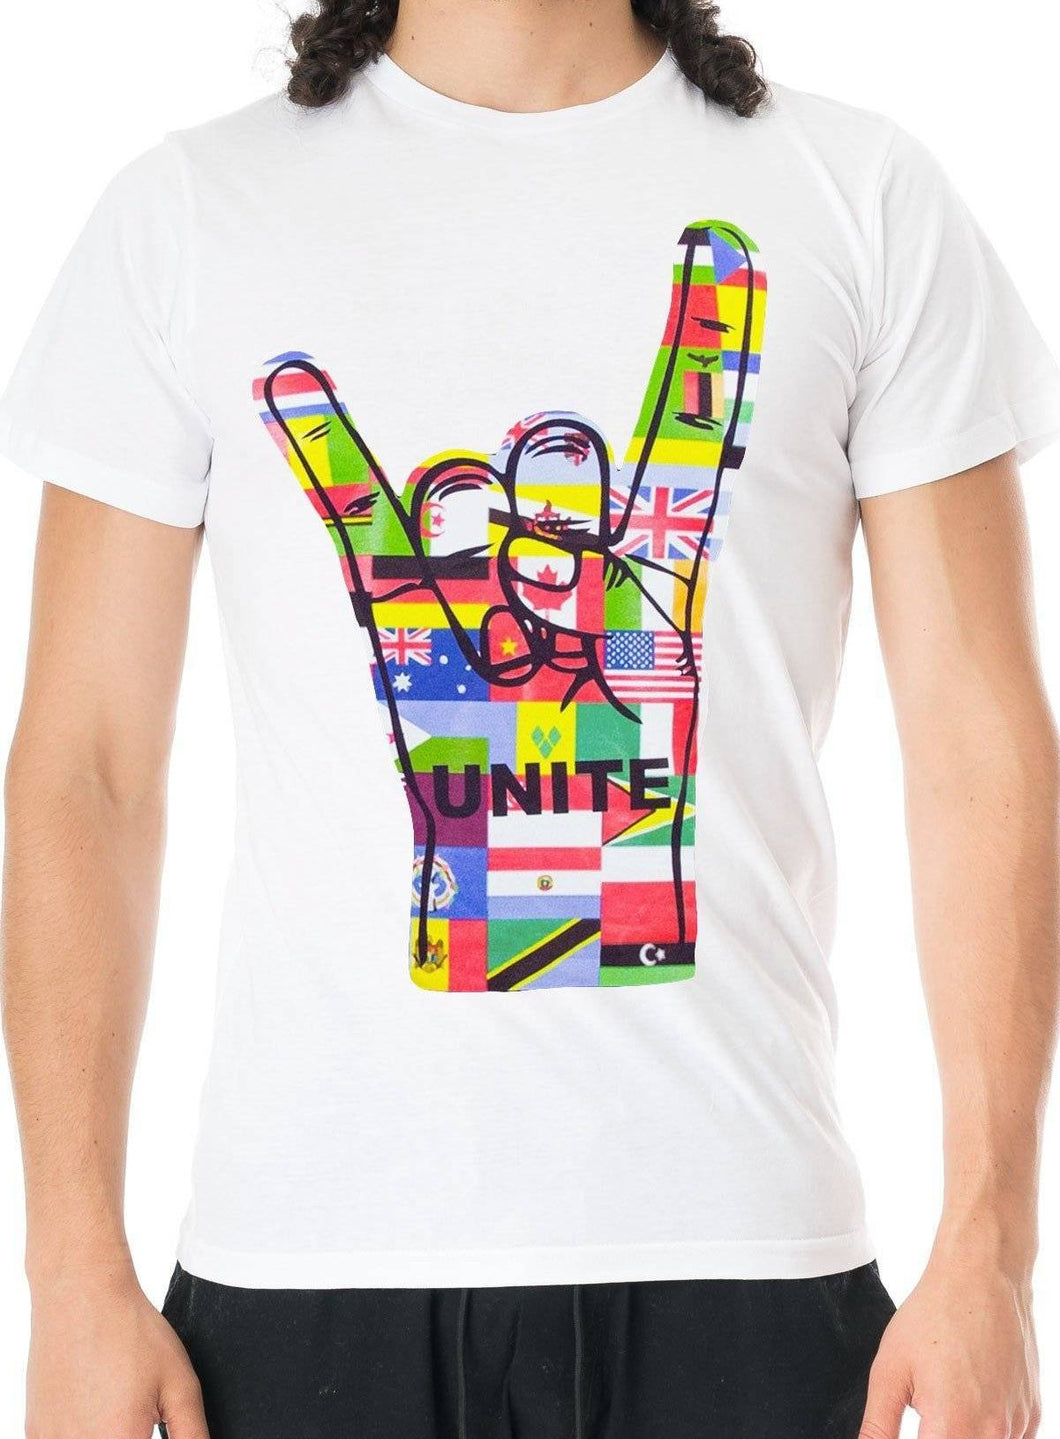 Unite - Party Rock Clothing REDFOO LMFAO